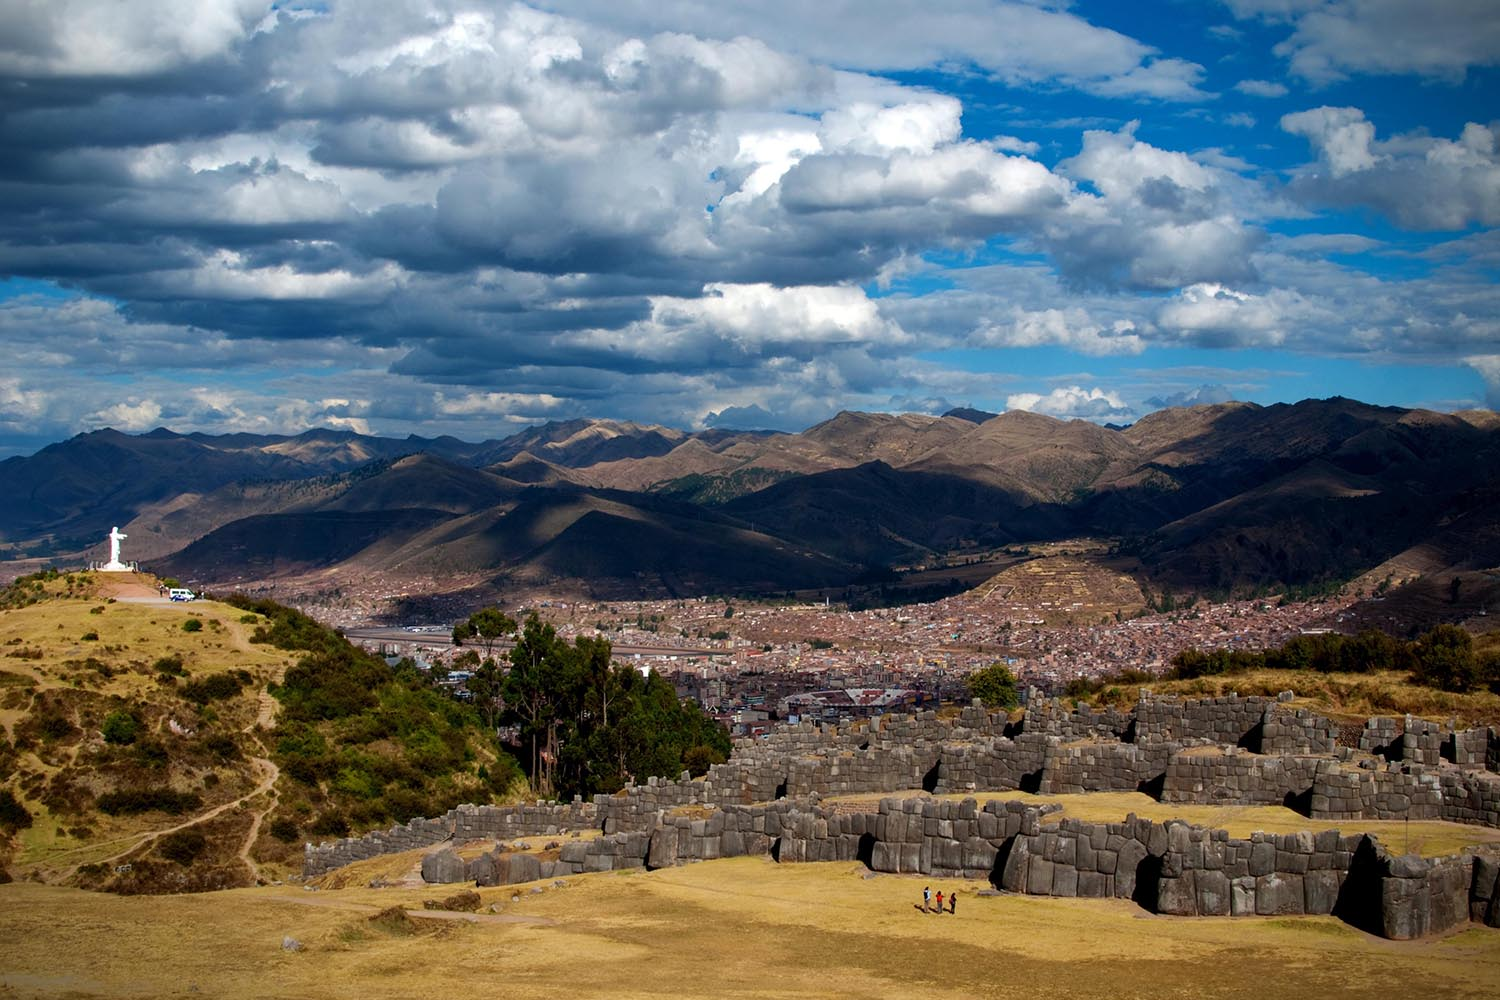 Sacsayhuaman Fortress in Cuzco